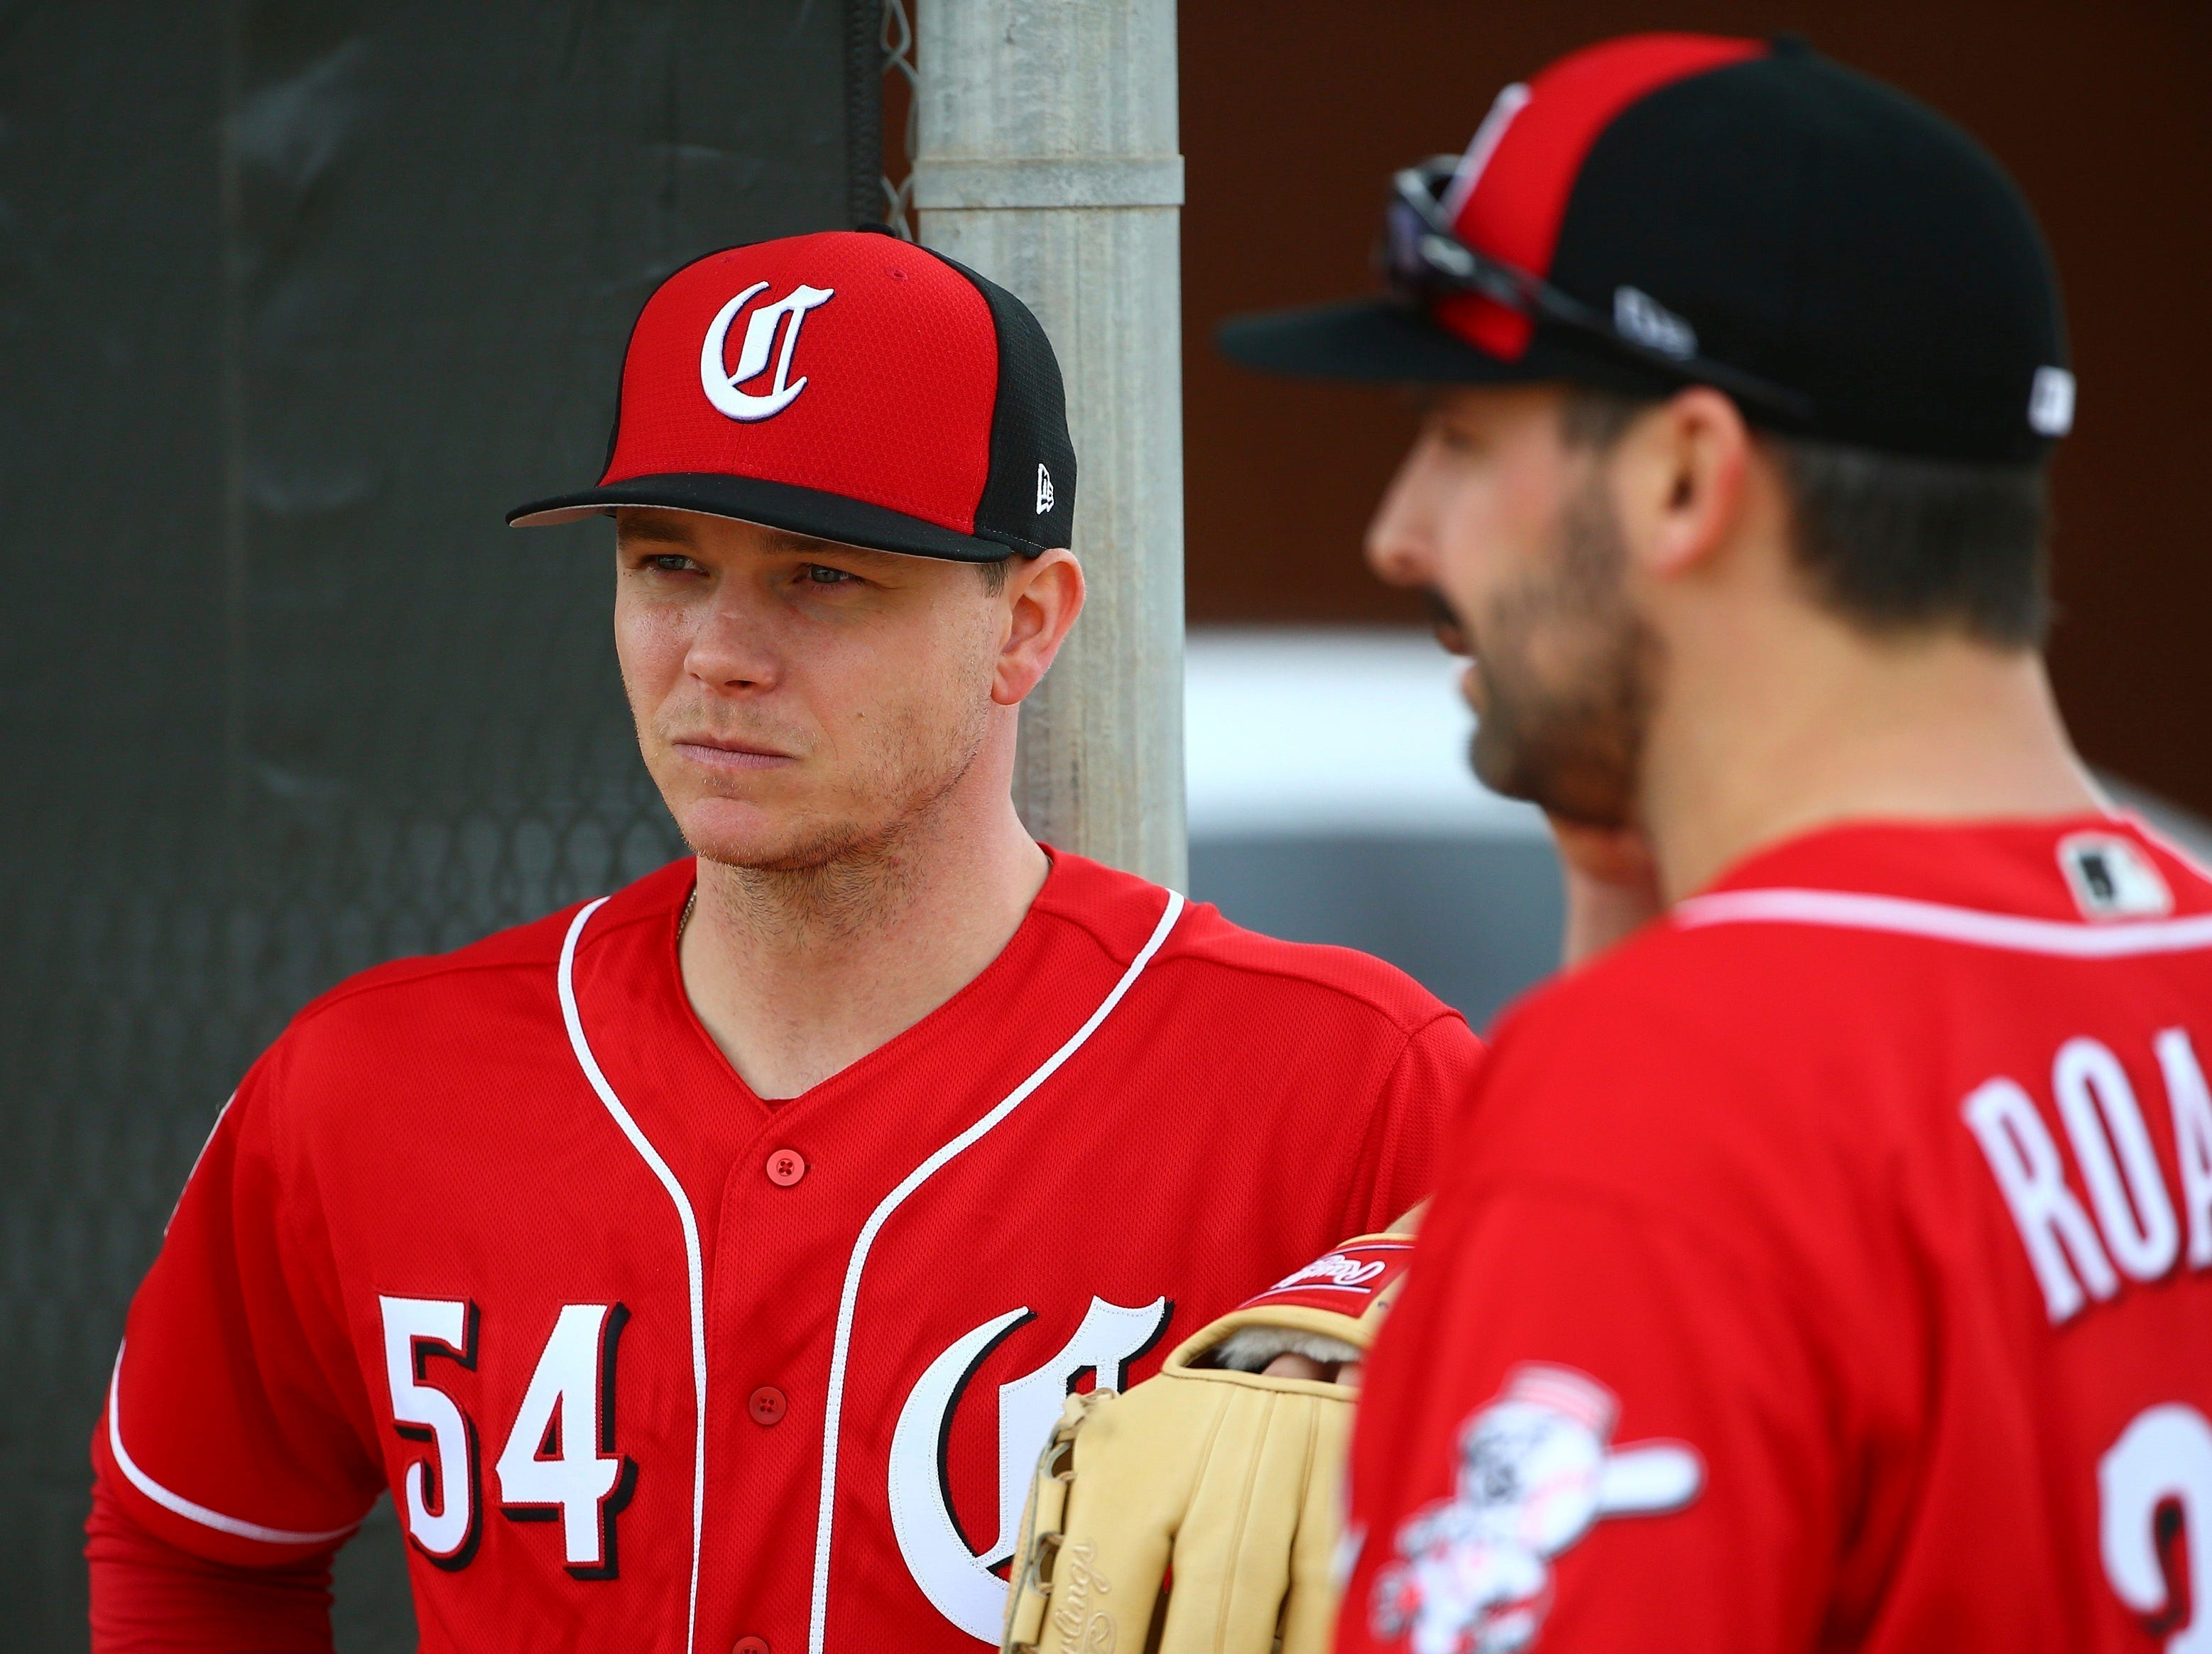 Cincinnati Reds pitcher Sonny Gray (54) and Tanner Roark pause during workouts at the Cincinnati Reds spring training baseball facility in Goodyear, Ariz., on Feb. 13, 2019.